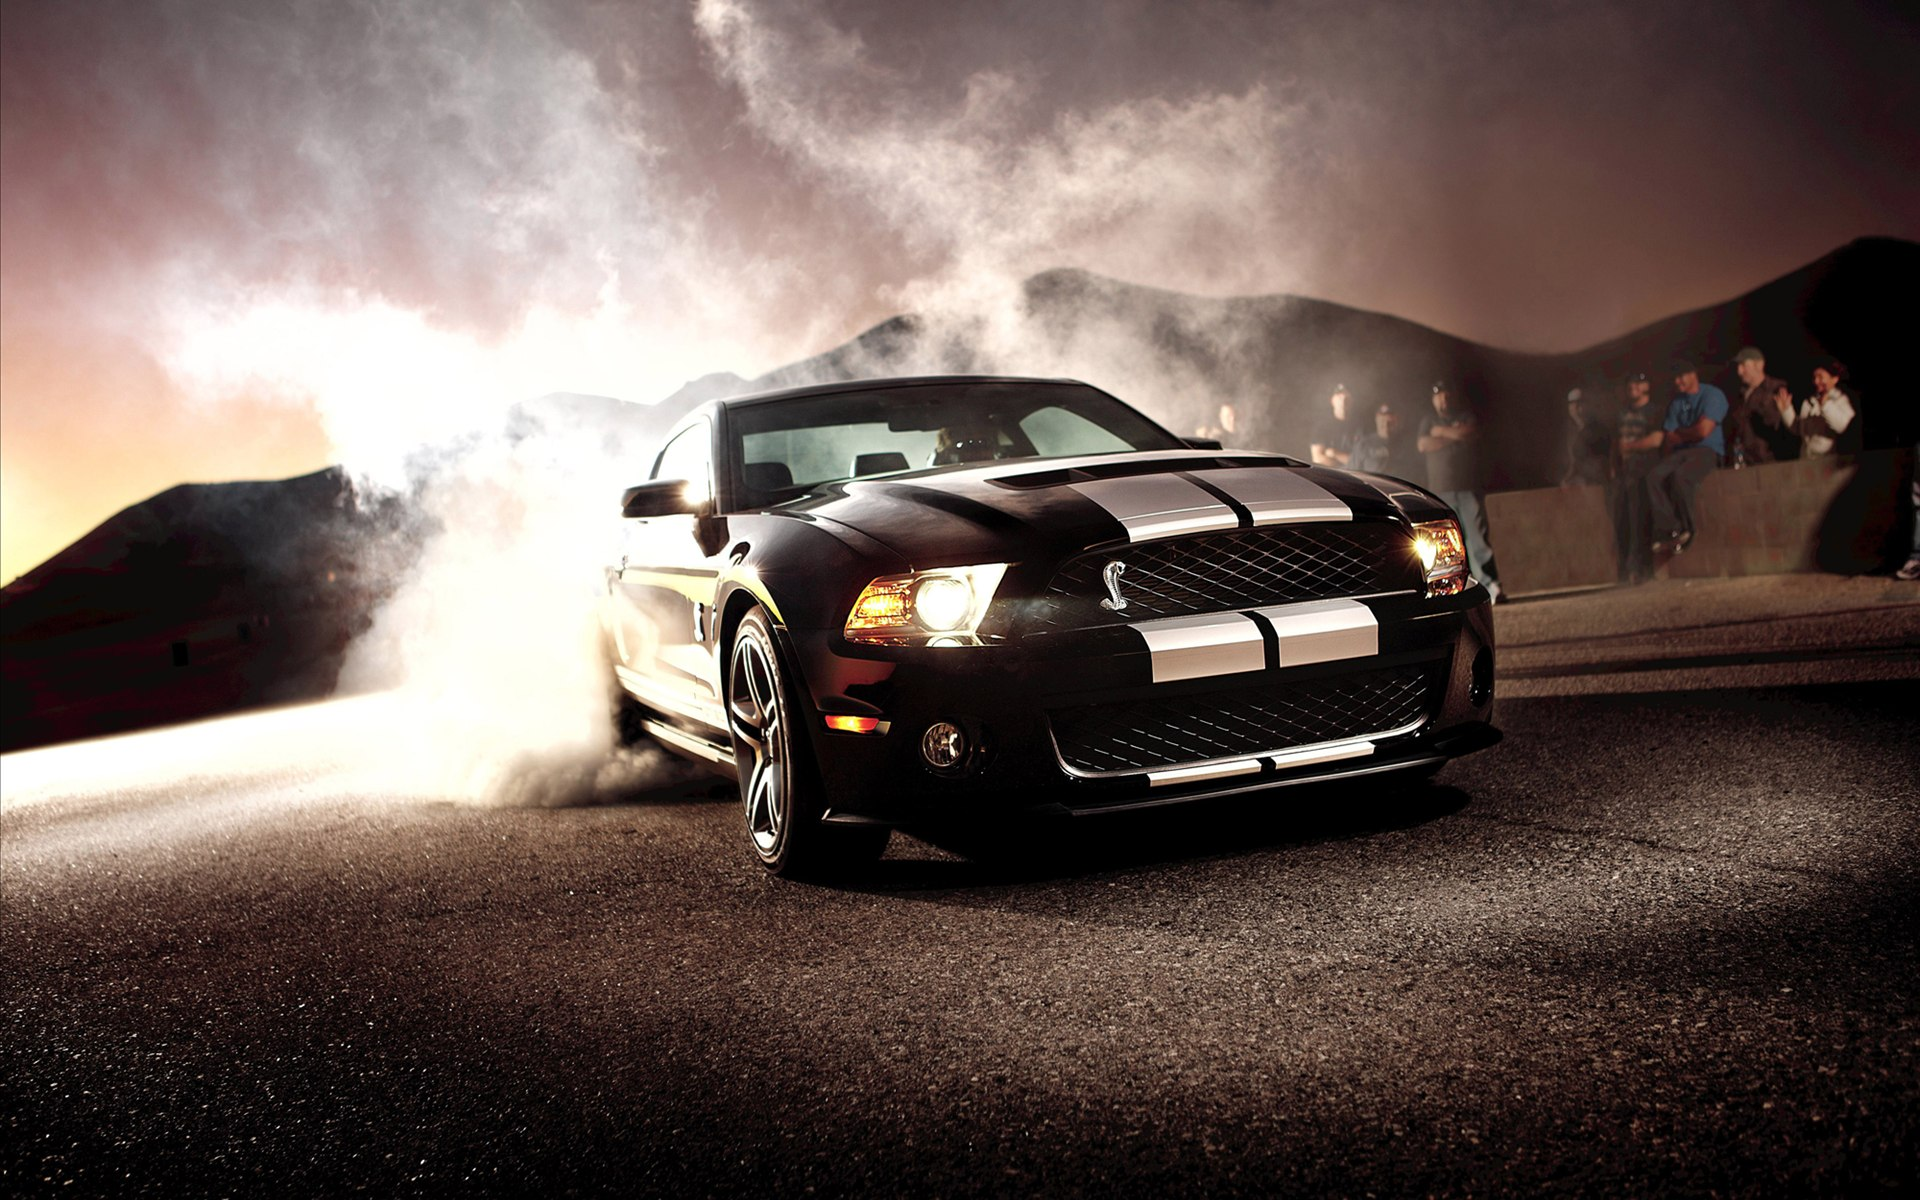 Mustang-HD-Wallpaper-High-Quality-for-laptop-06